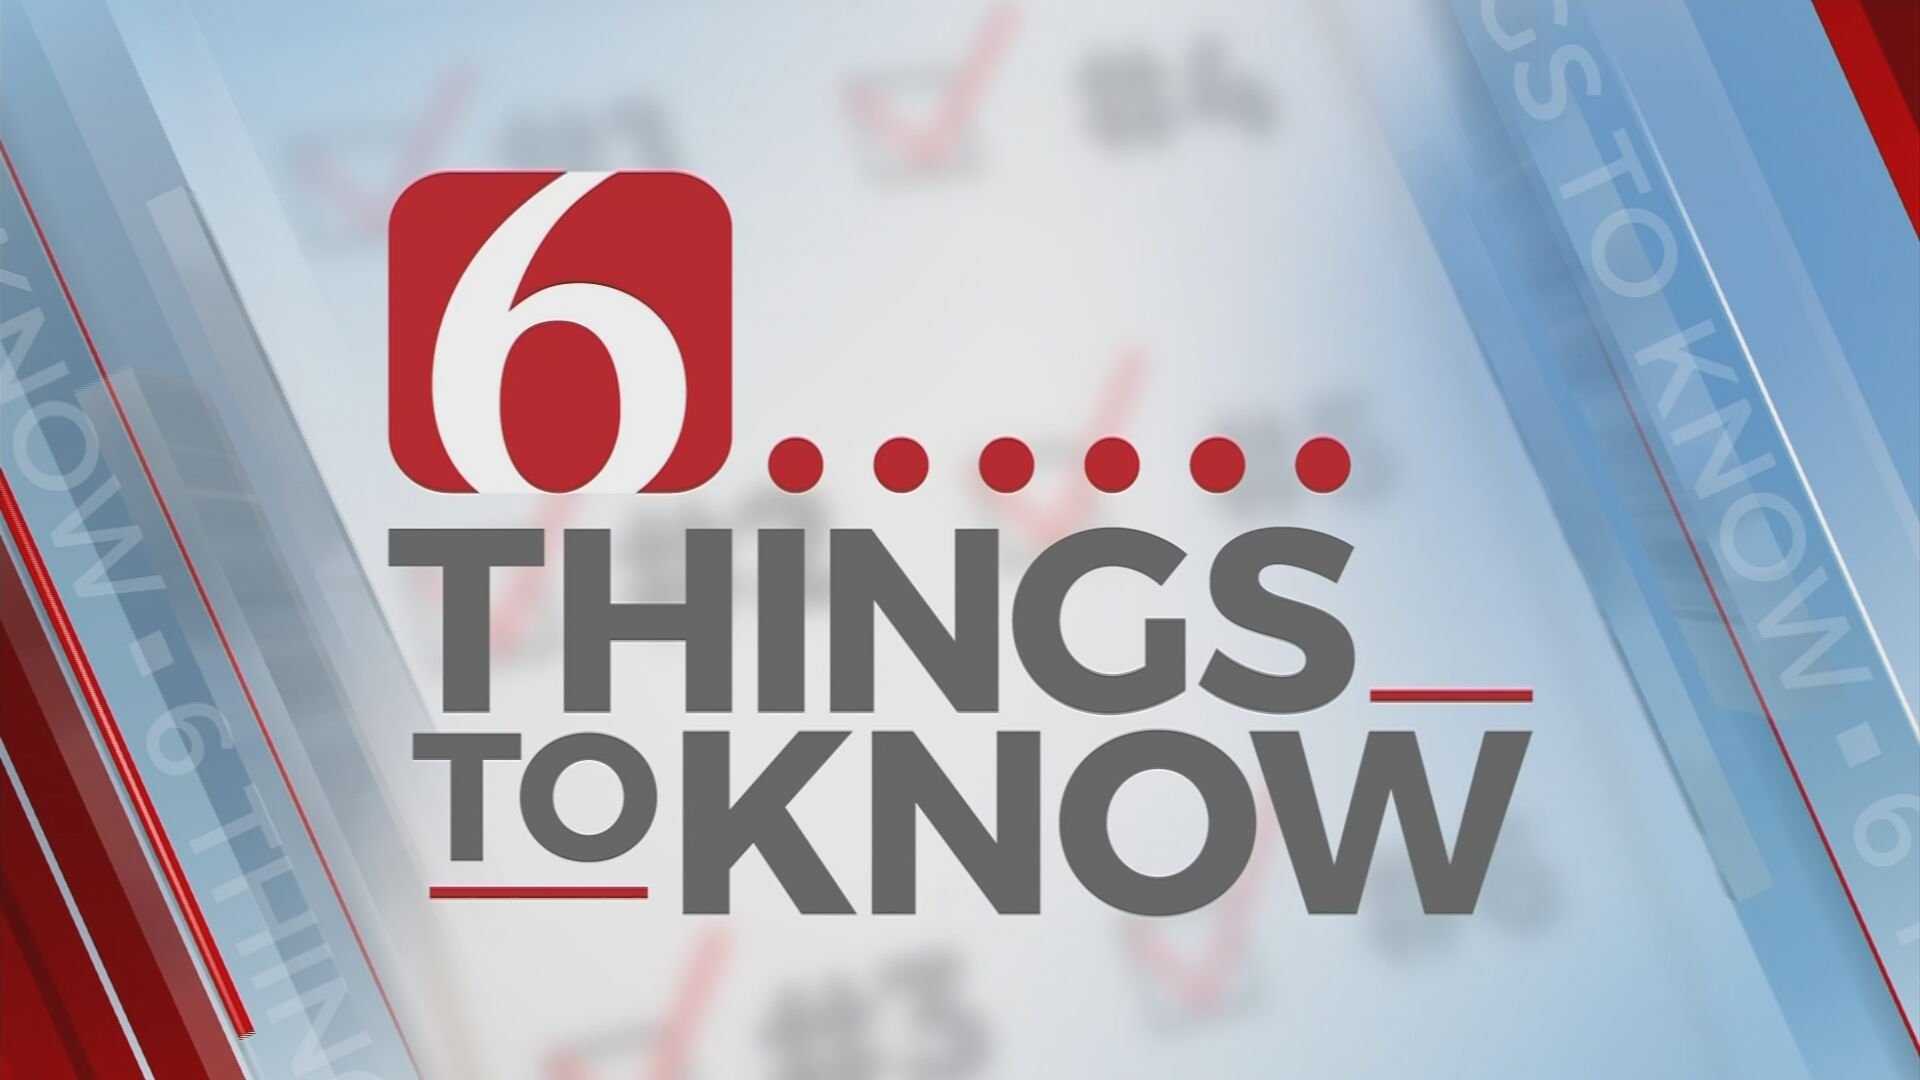 6 Things To Know (Dec 16): Doctors On Hand To Answer Your Vaccine Questions